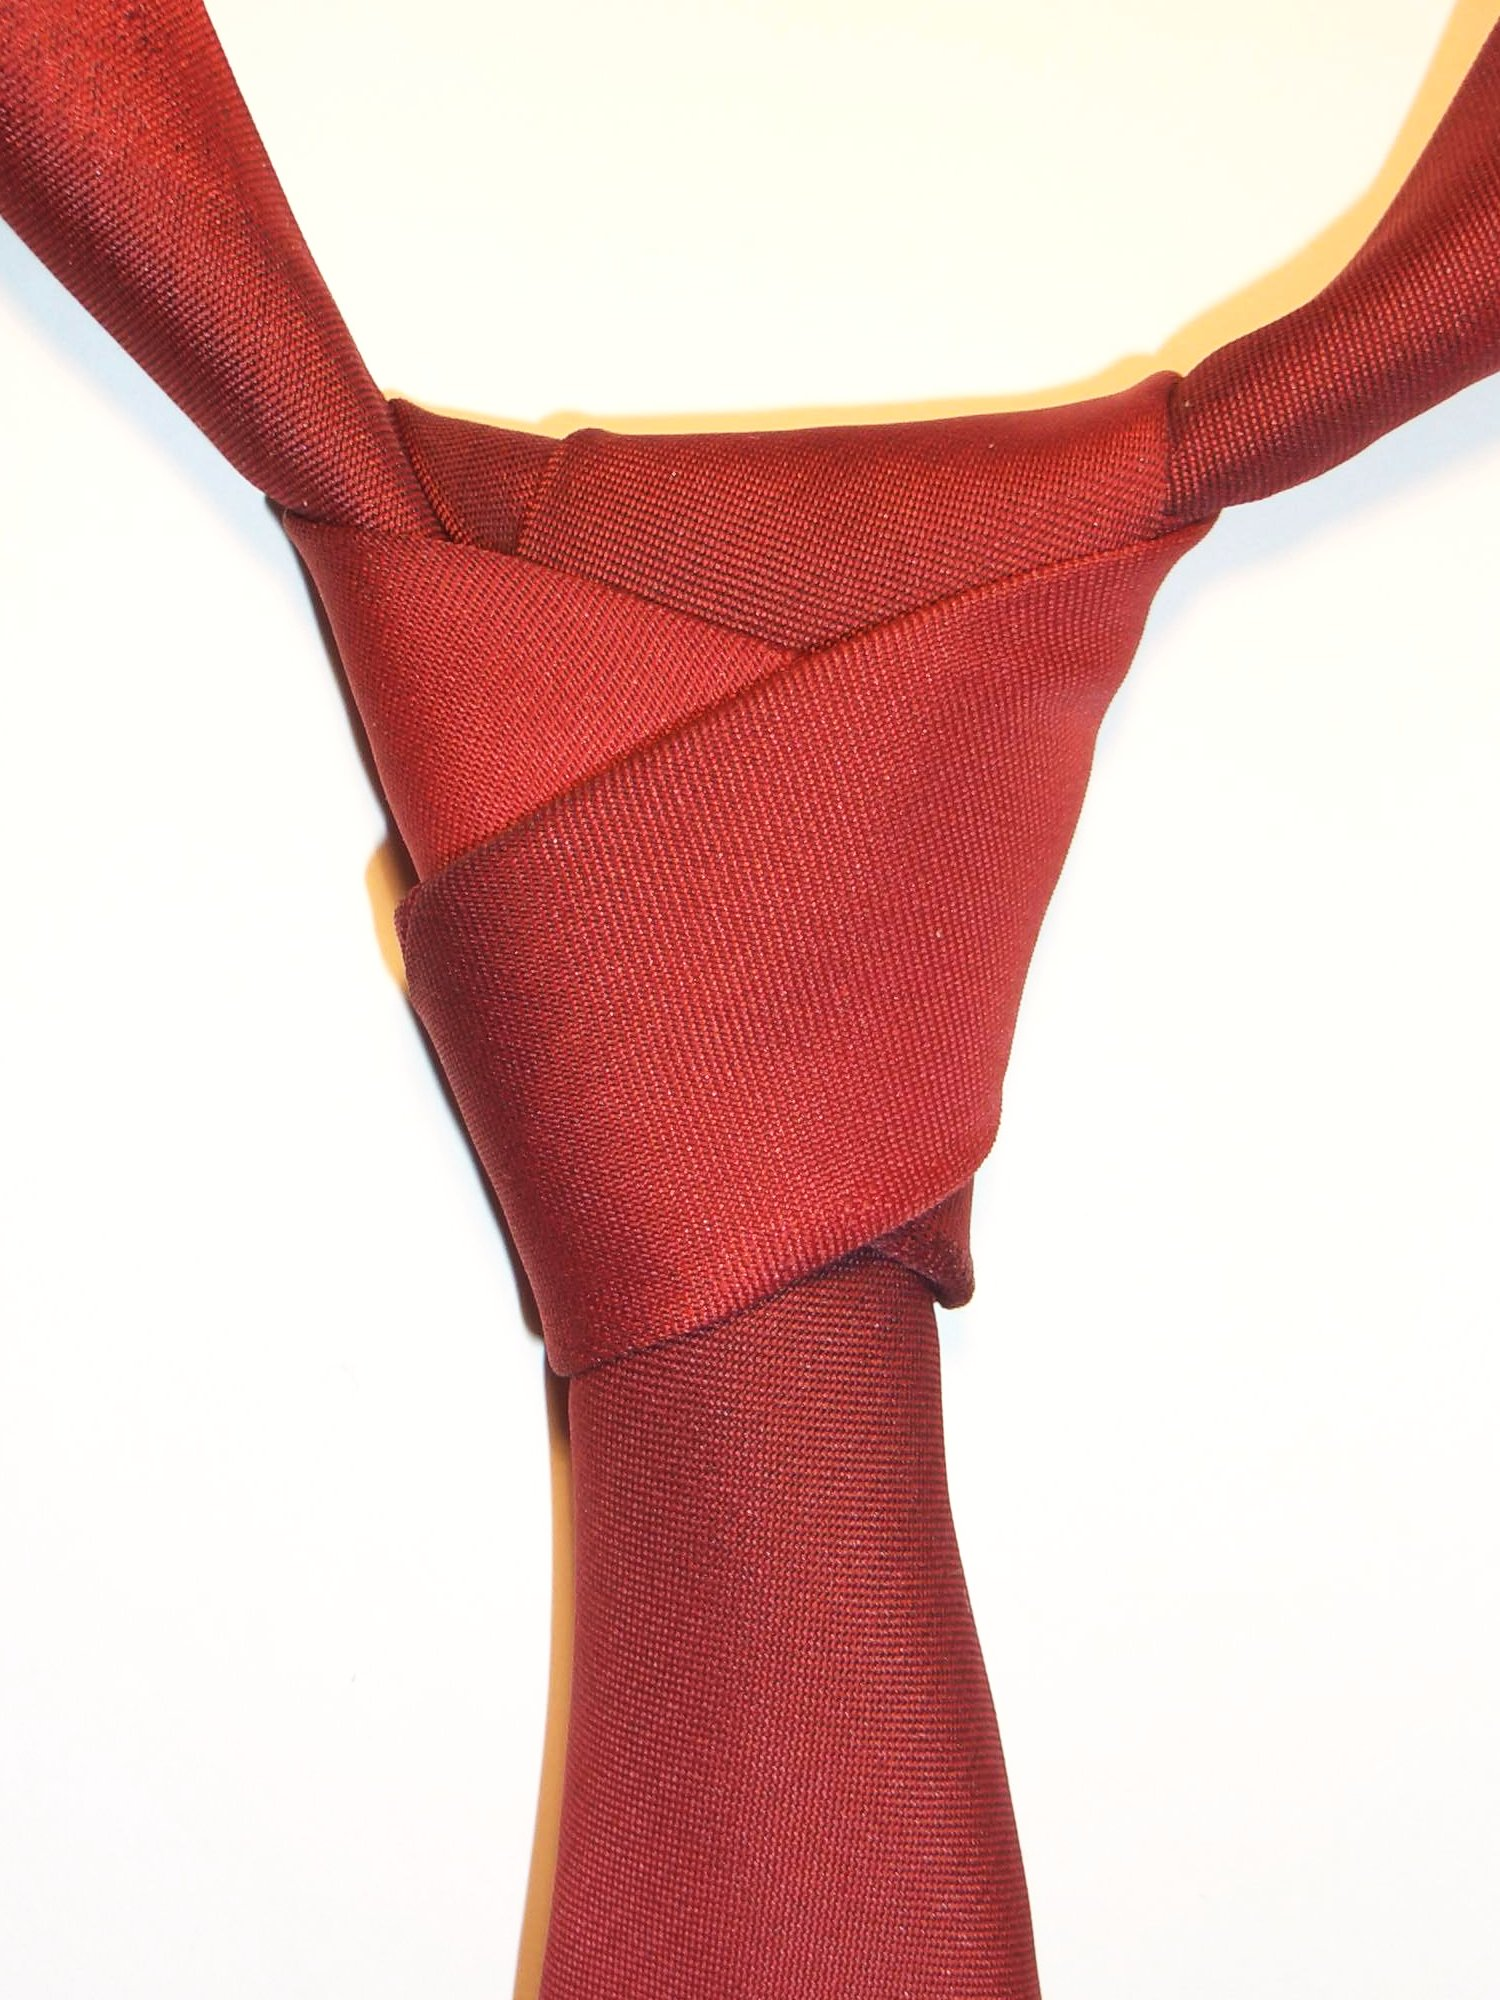 how to make a big knot tie